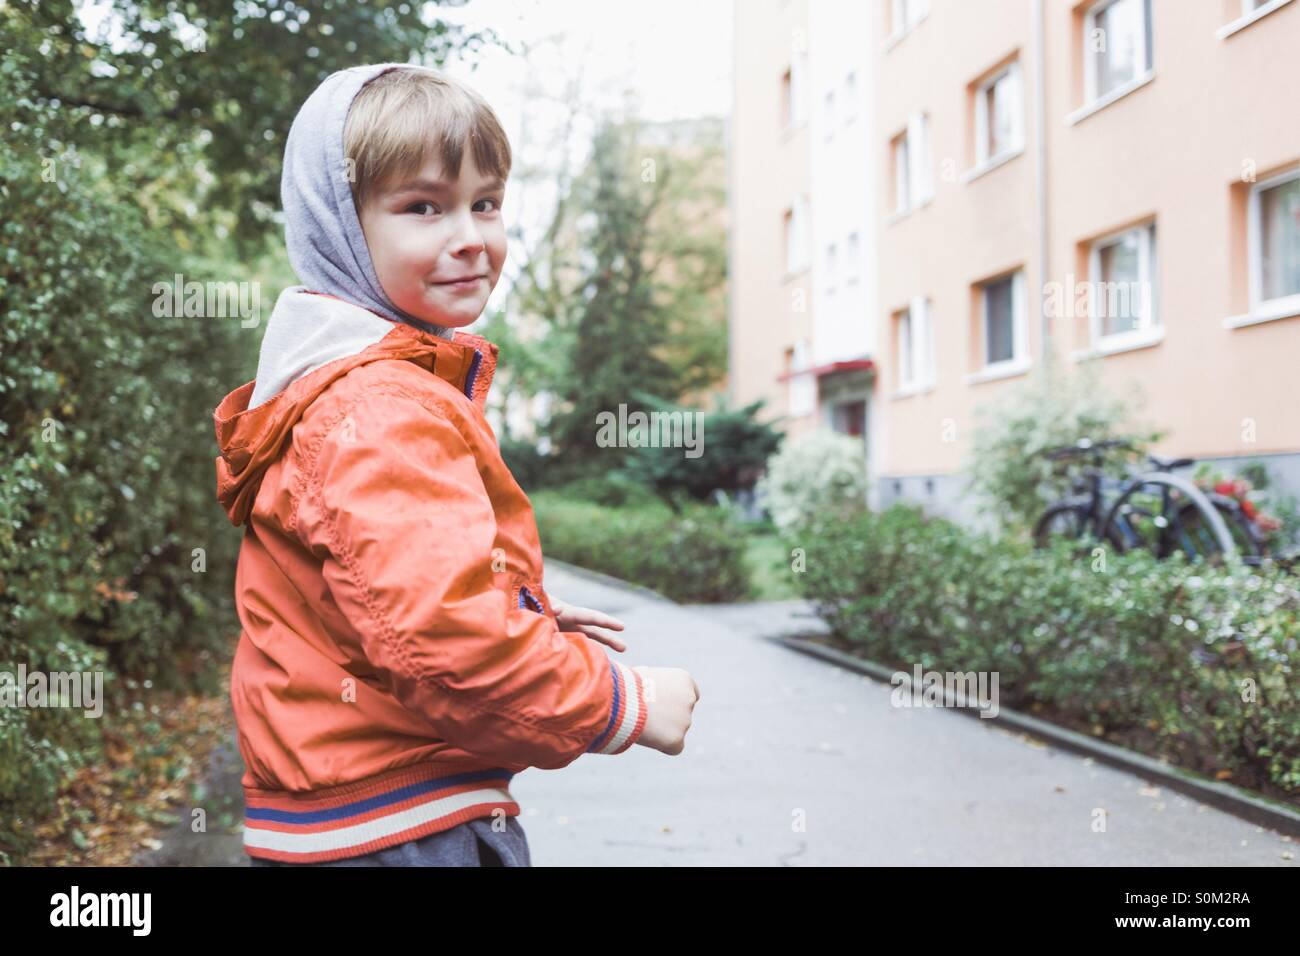 Portrait of preschool boy in urban background, smiling into camera - Stock Image